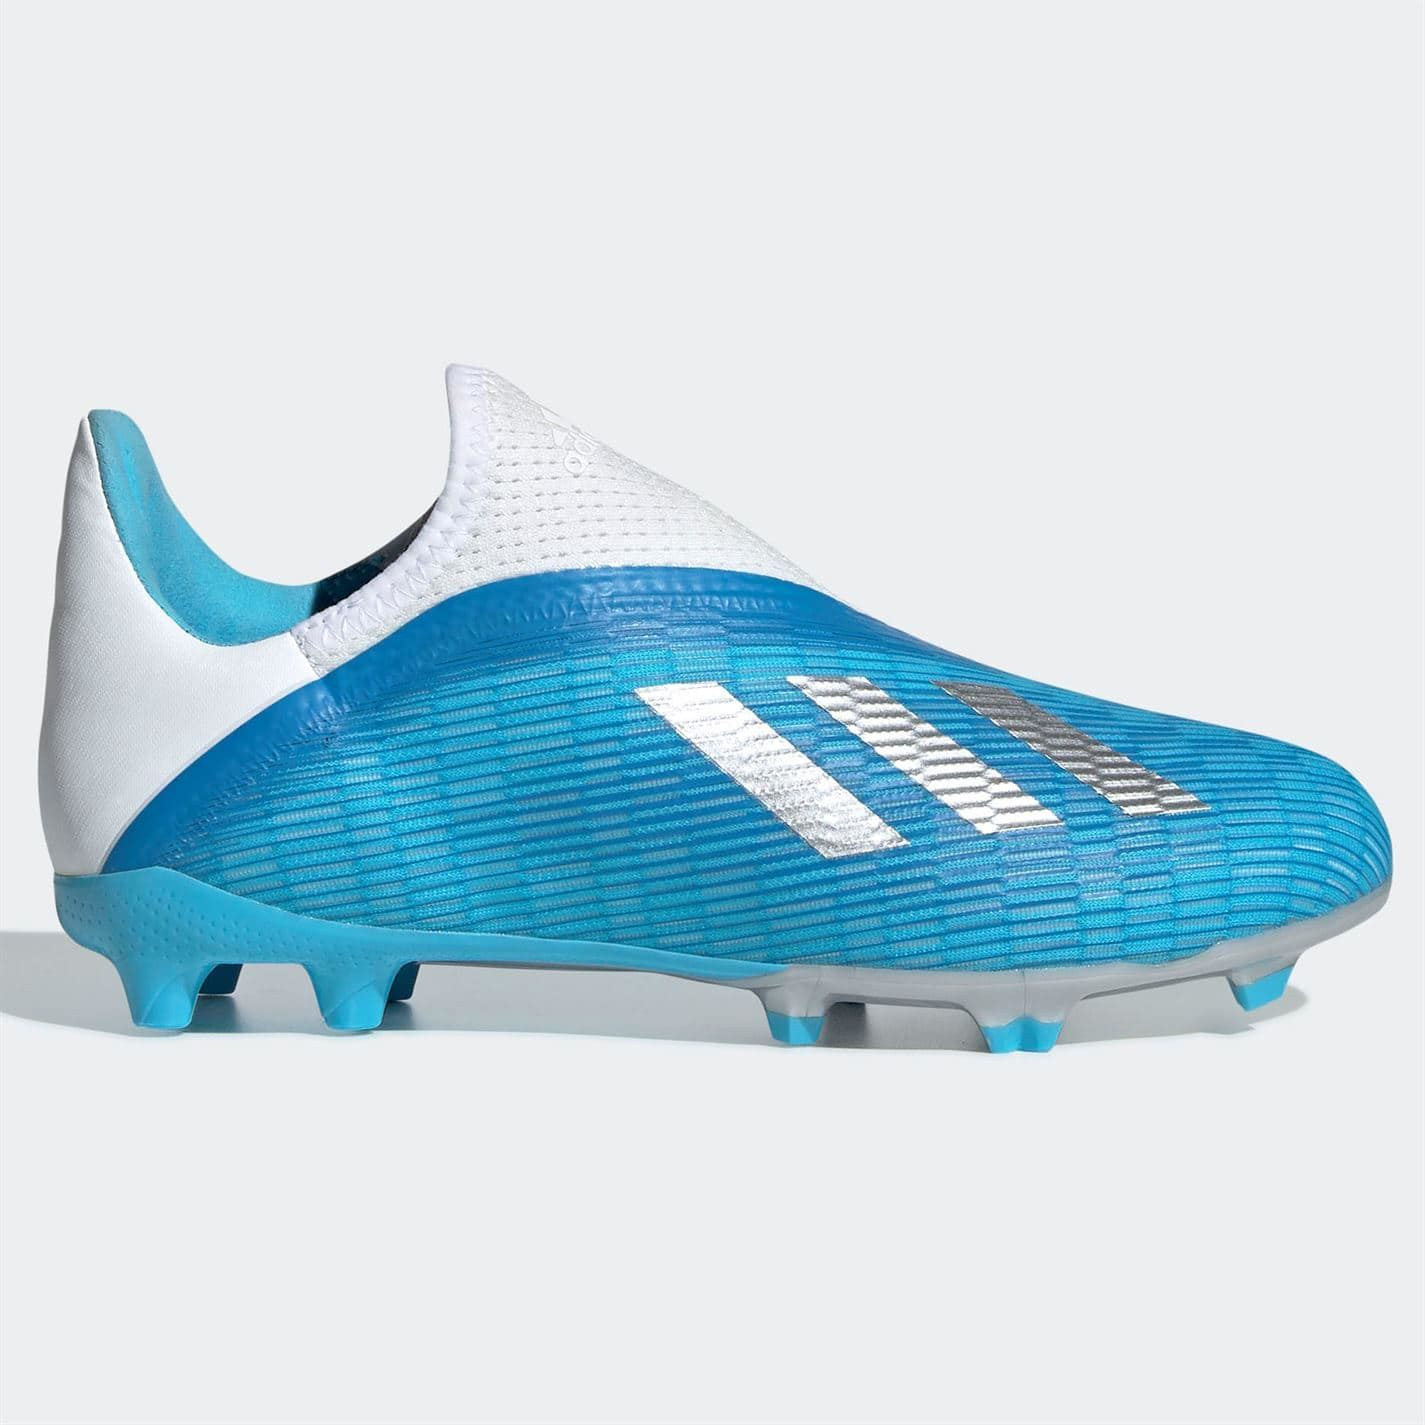 Details about adidas X 19.3 Laceless s FG Football Boots Child Boys  Cyan/Black Footwear